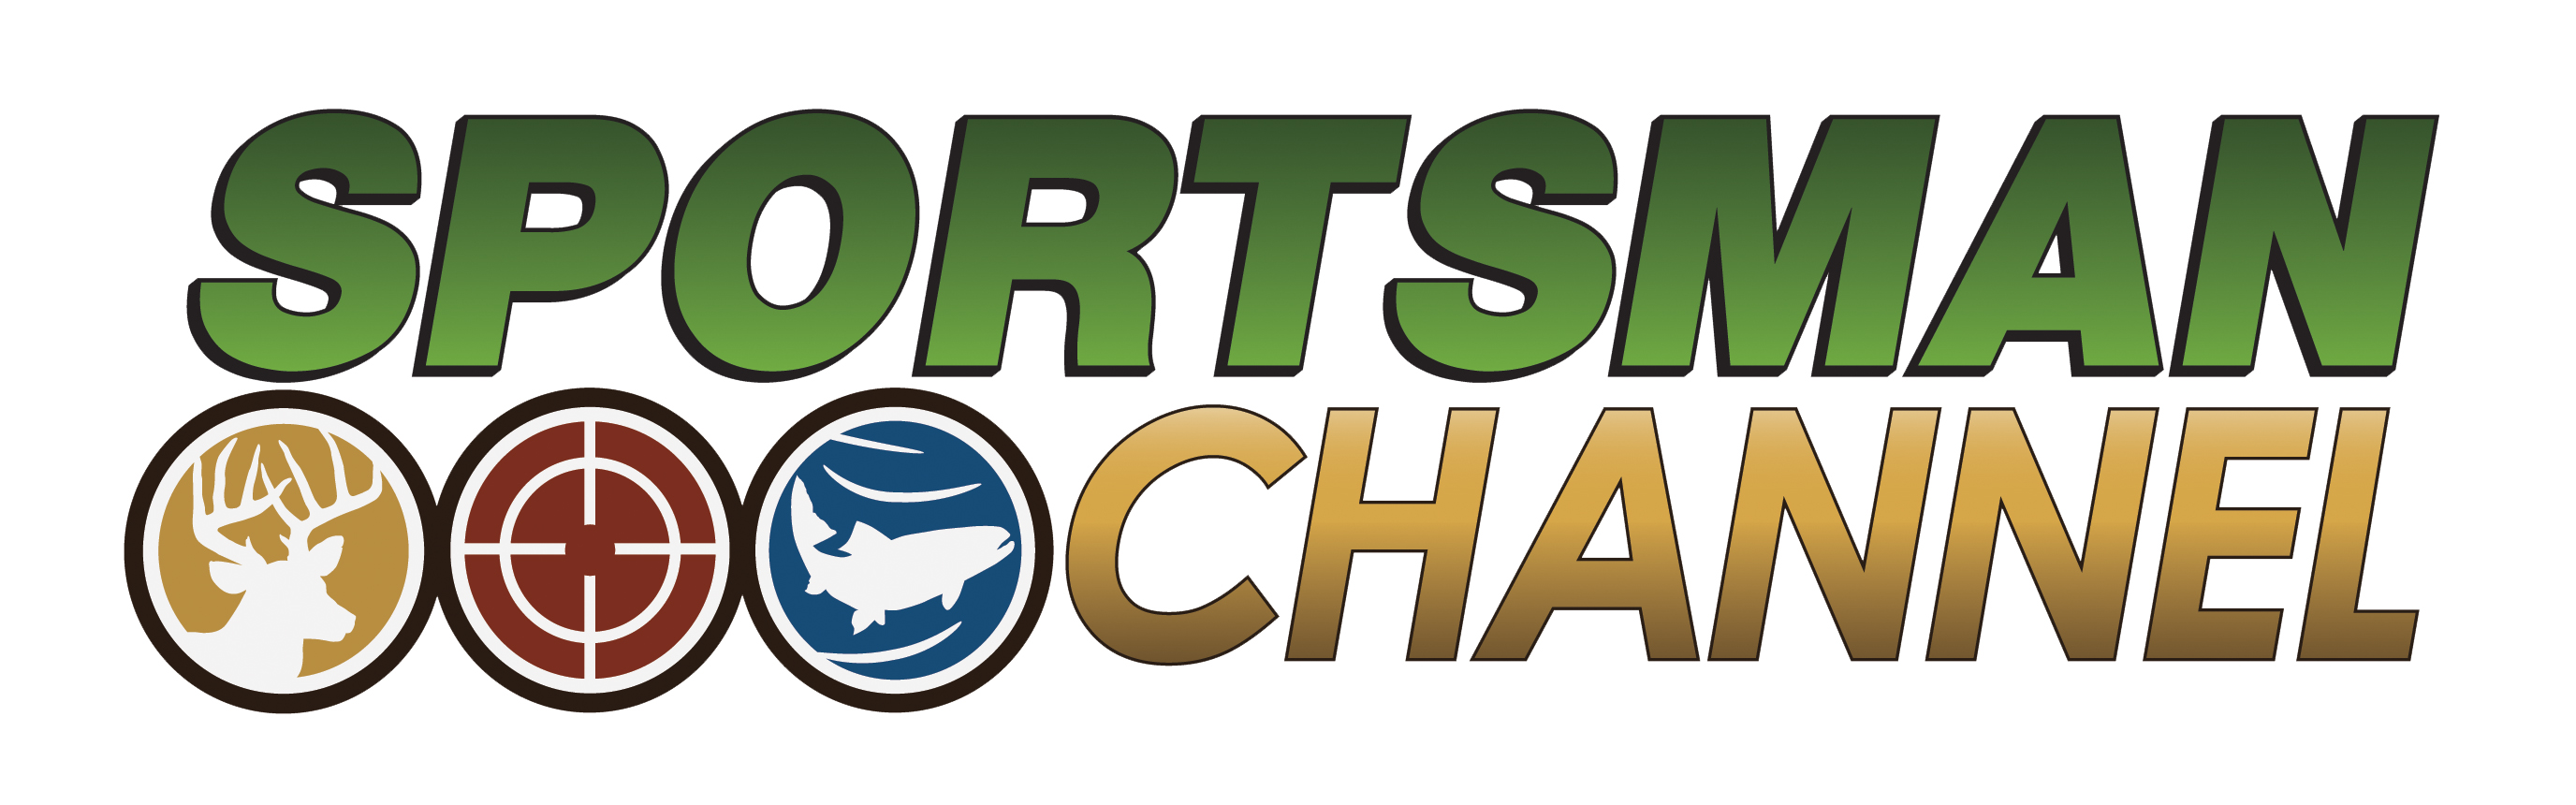 Sportsman Channel, the leader in outdoor TV for the American Sportsman, announced Tuesday it has